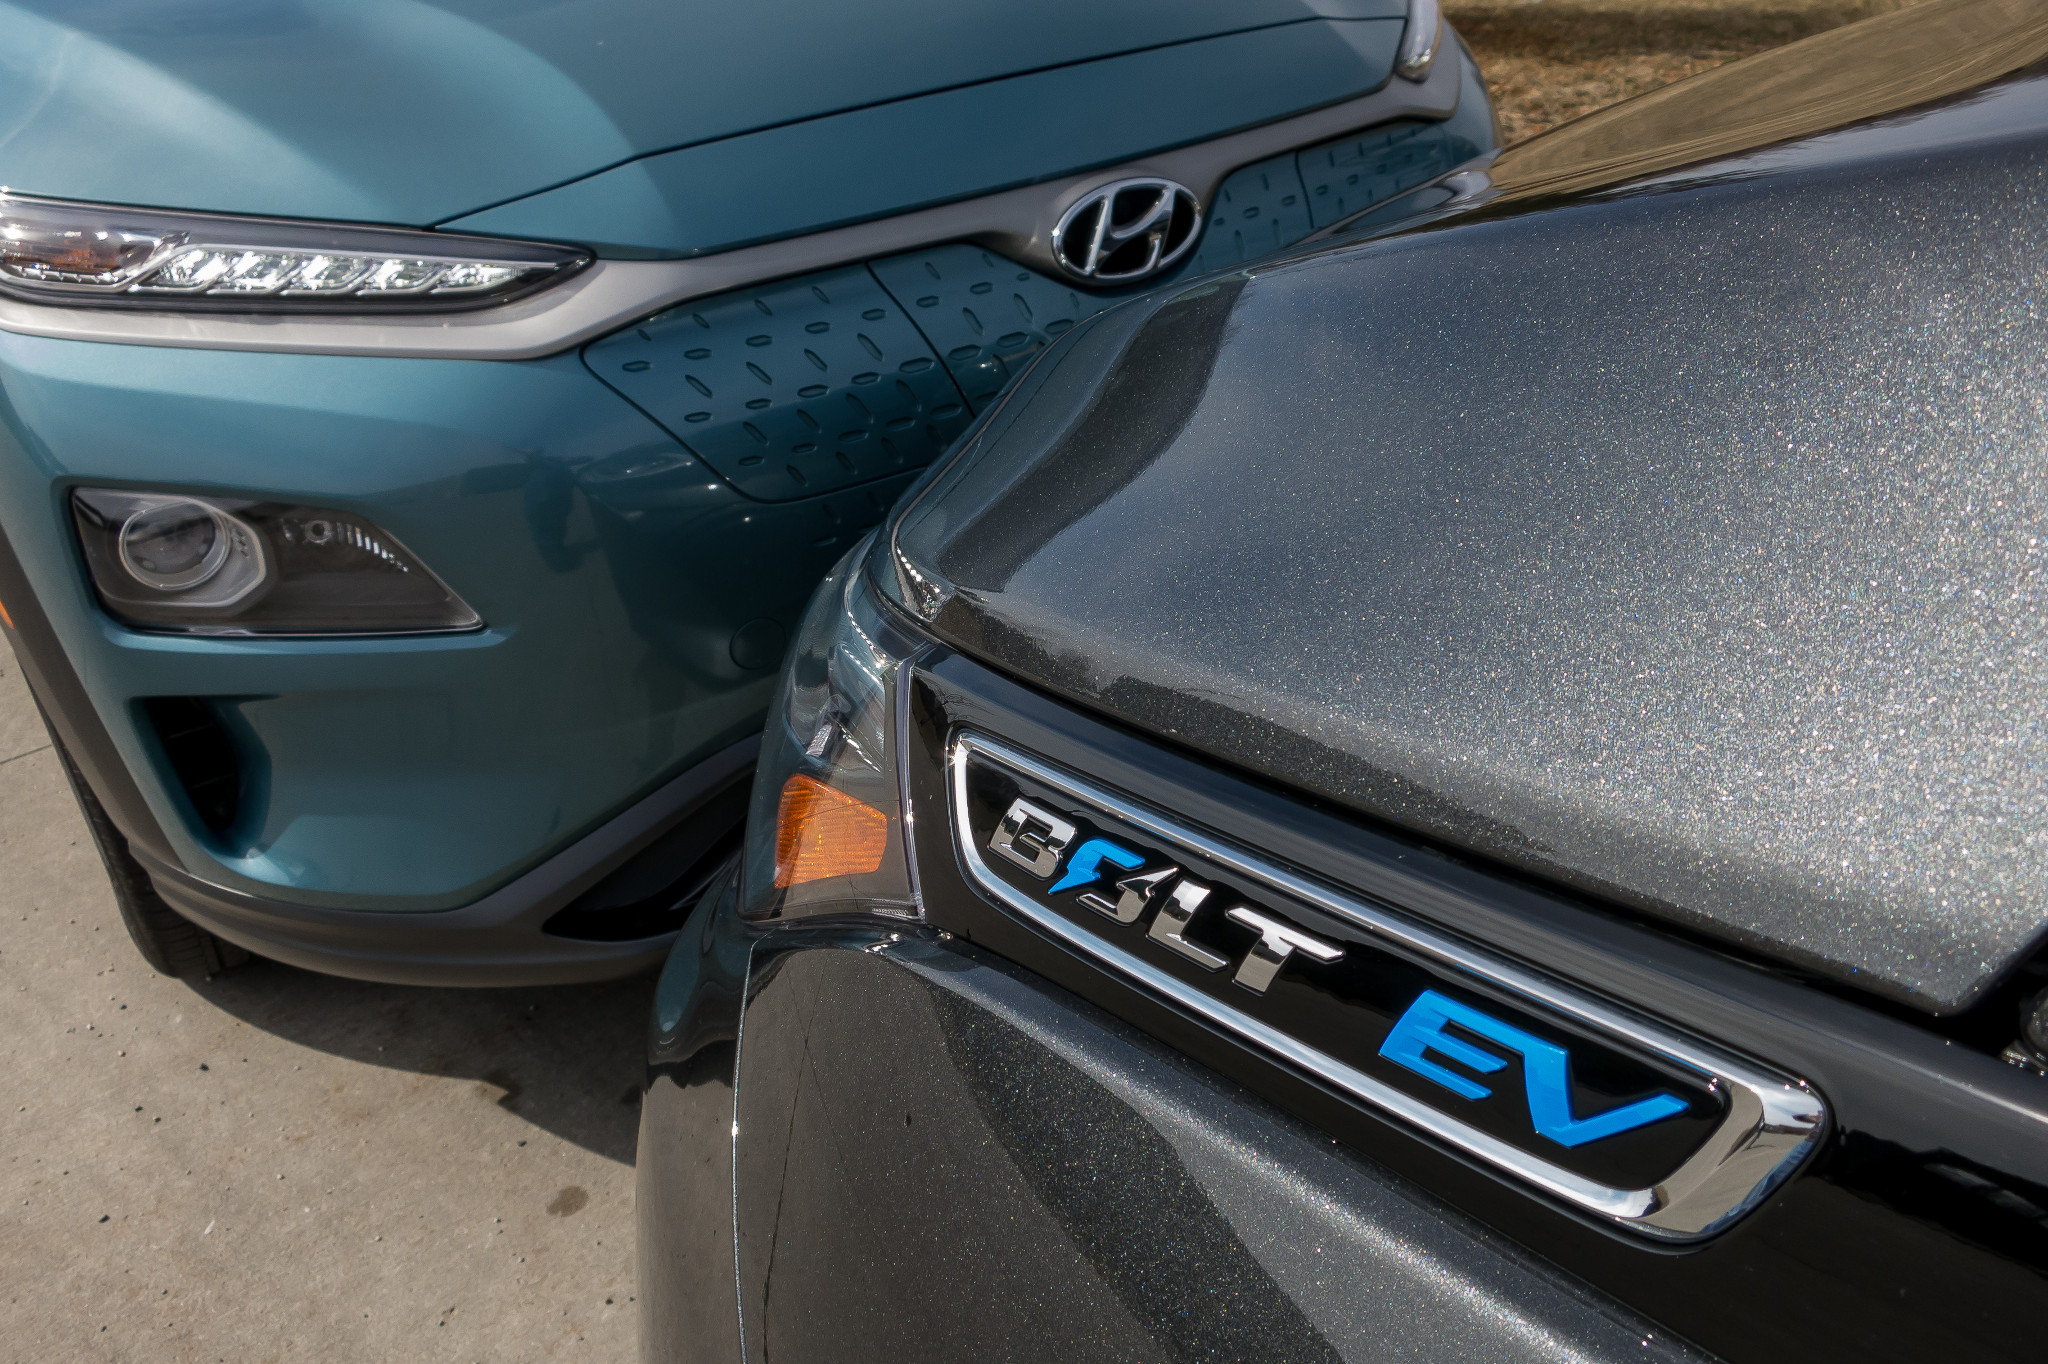 Hyundai Kona Electric Vs  Chevrolet Bolt EV: Which Is the Better